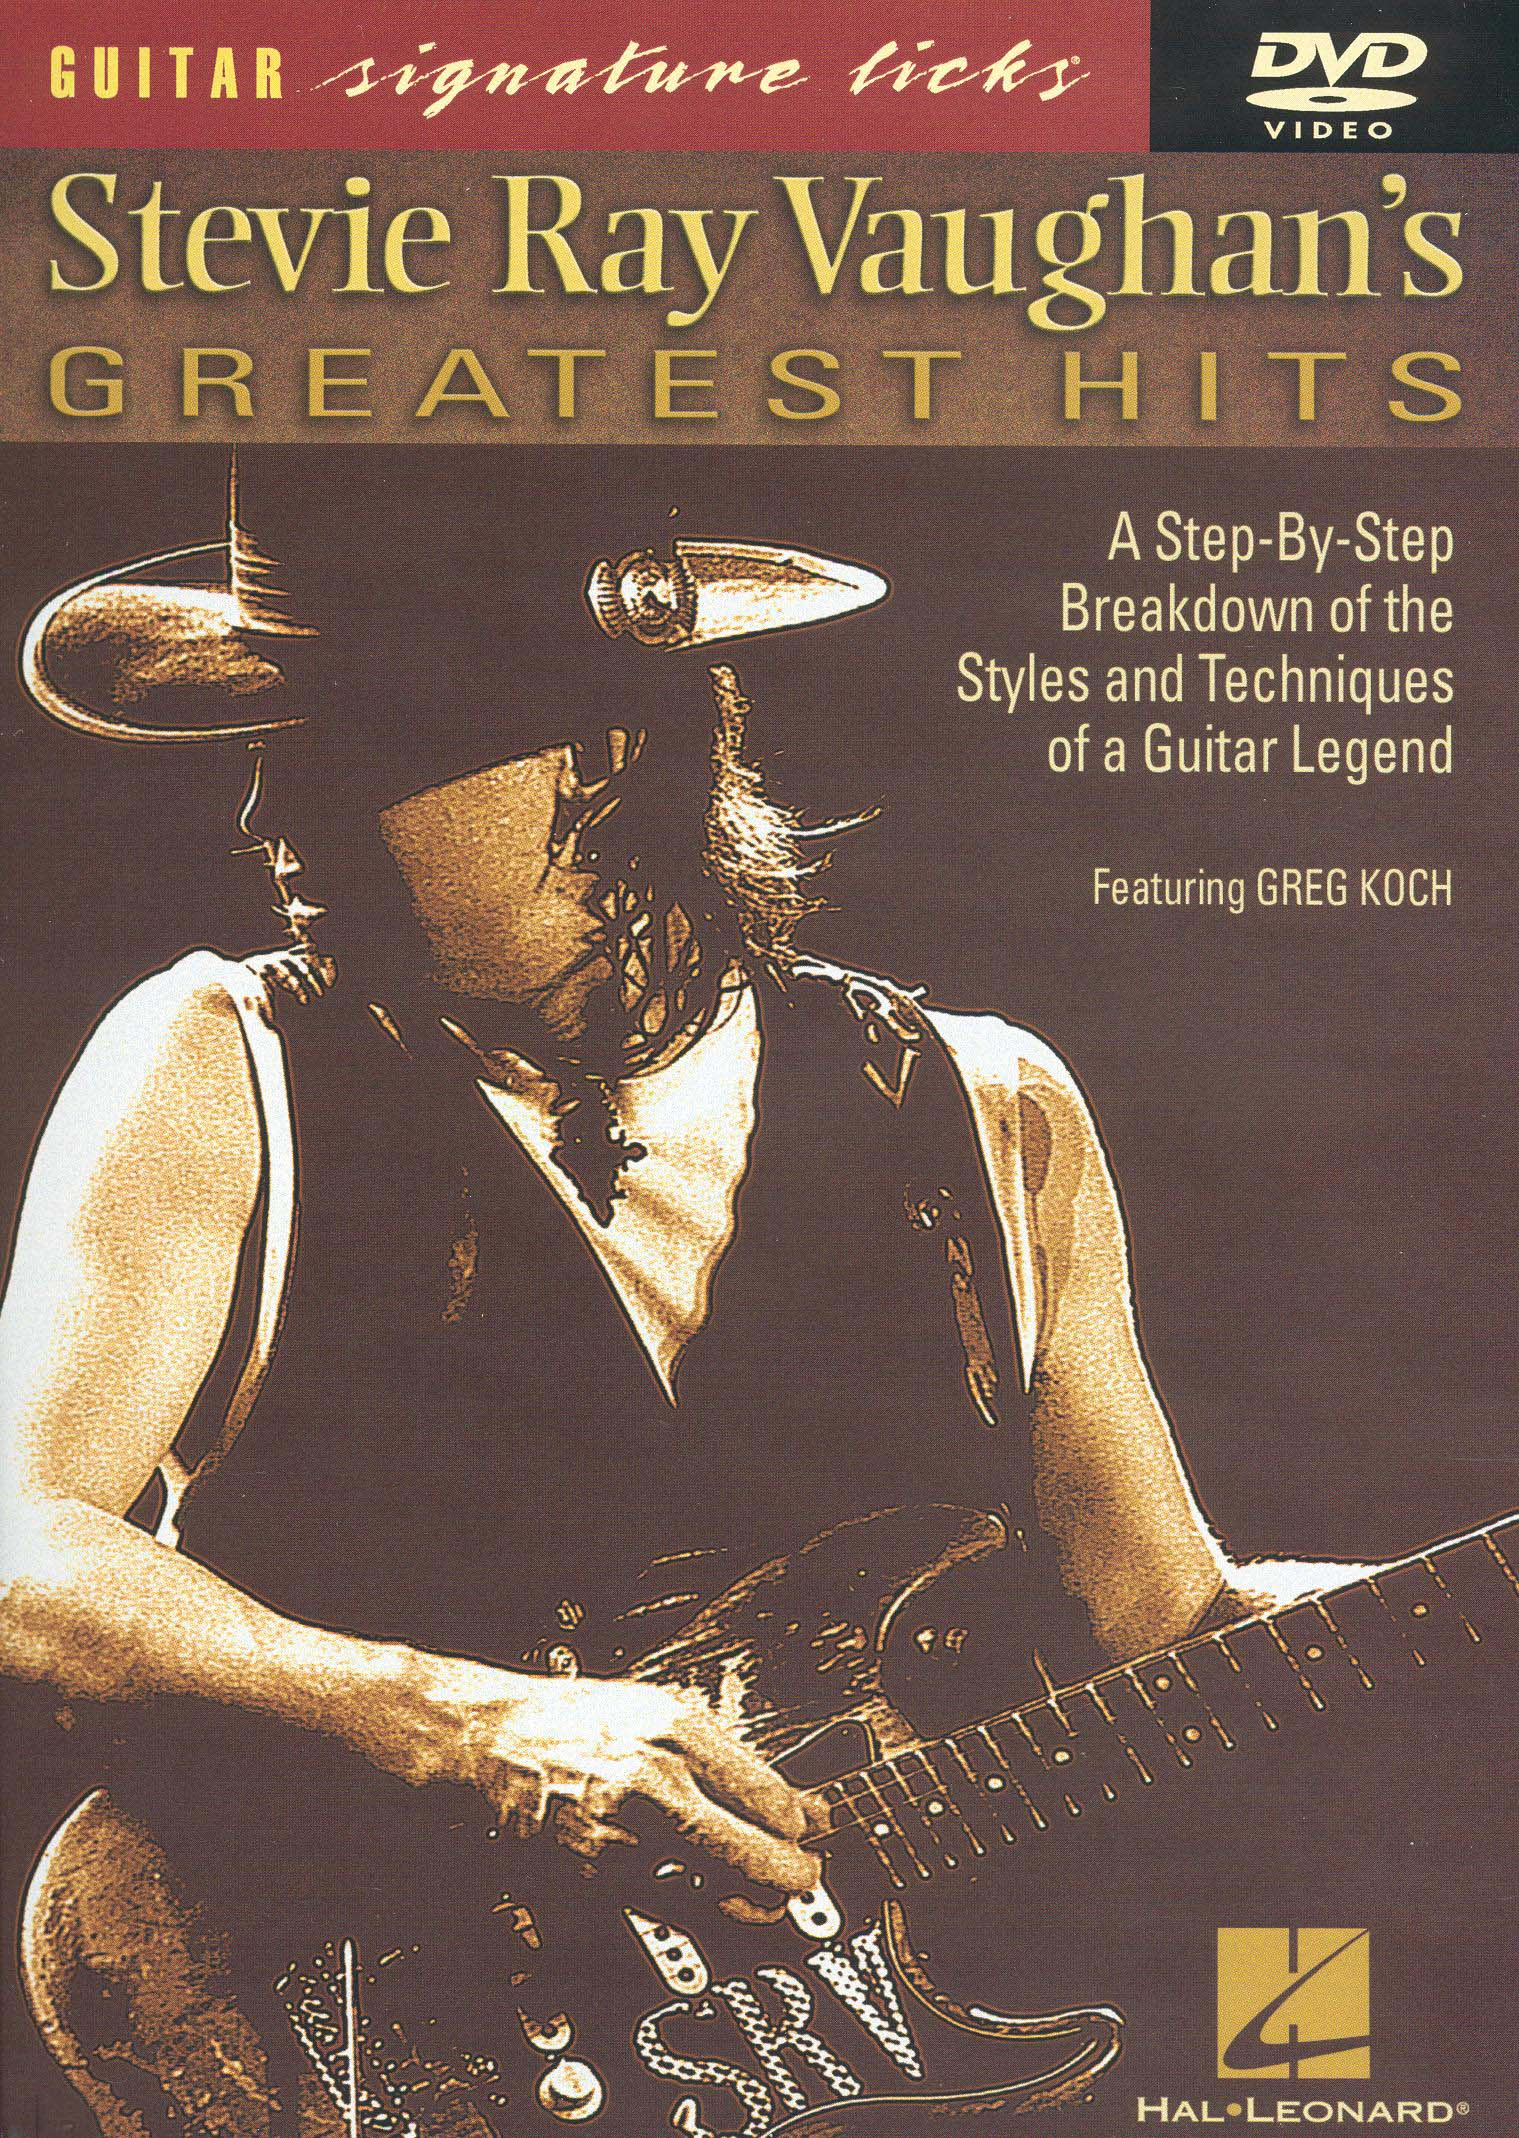 Guitar Signature Licks: Stevie Ray Vaughan's Greatest Hits